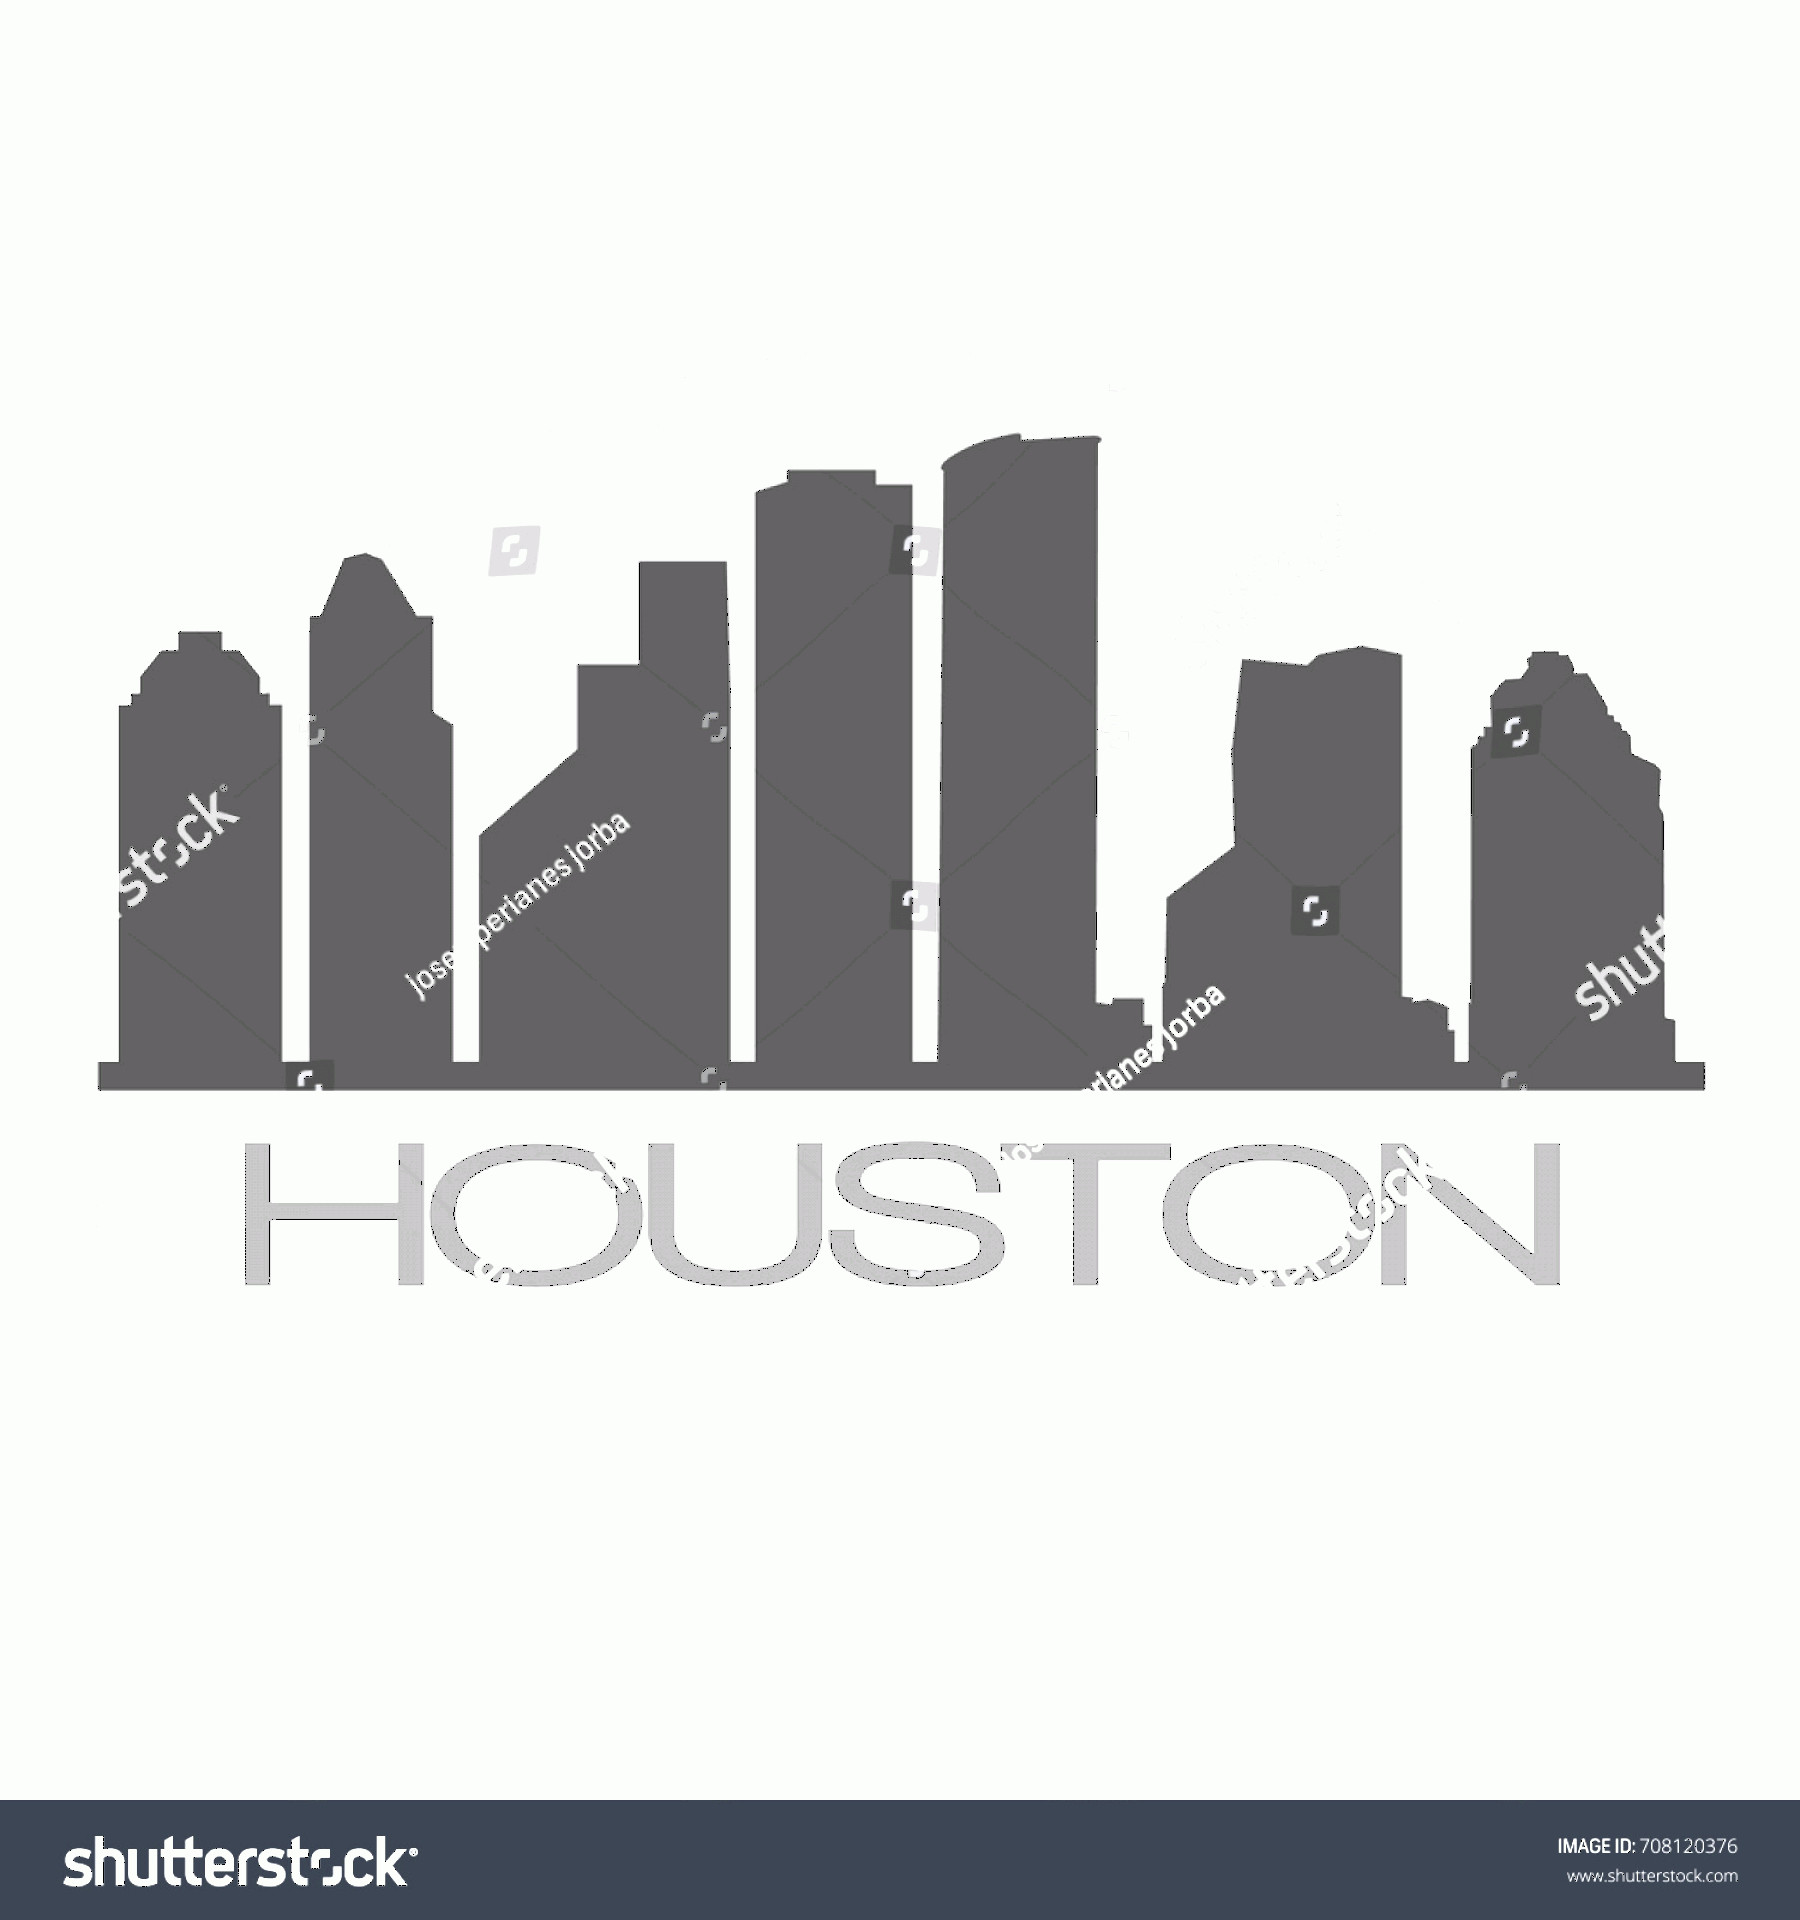 Vector Houston TX: Houston Skyline Silhouette City Design Vector